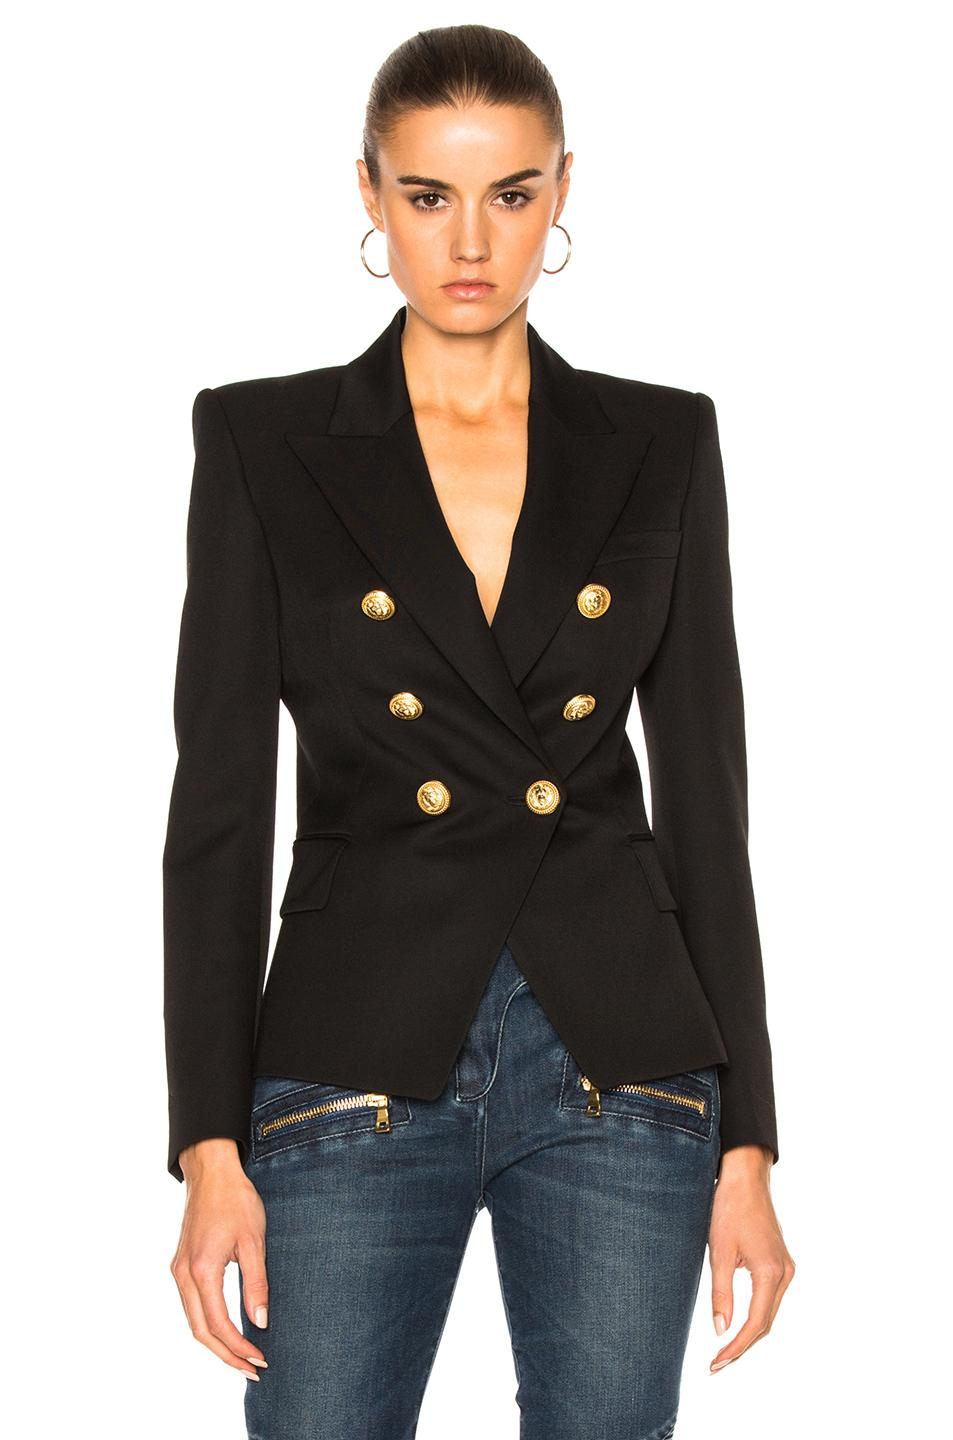 Balmain Tailored Double-Breasted Wool Blazer  In C0100 Black